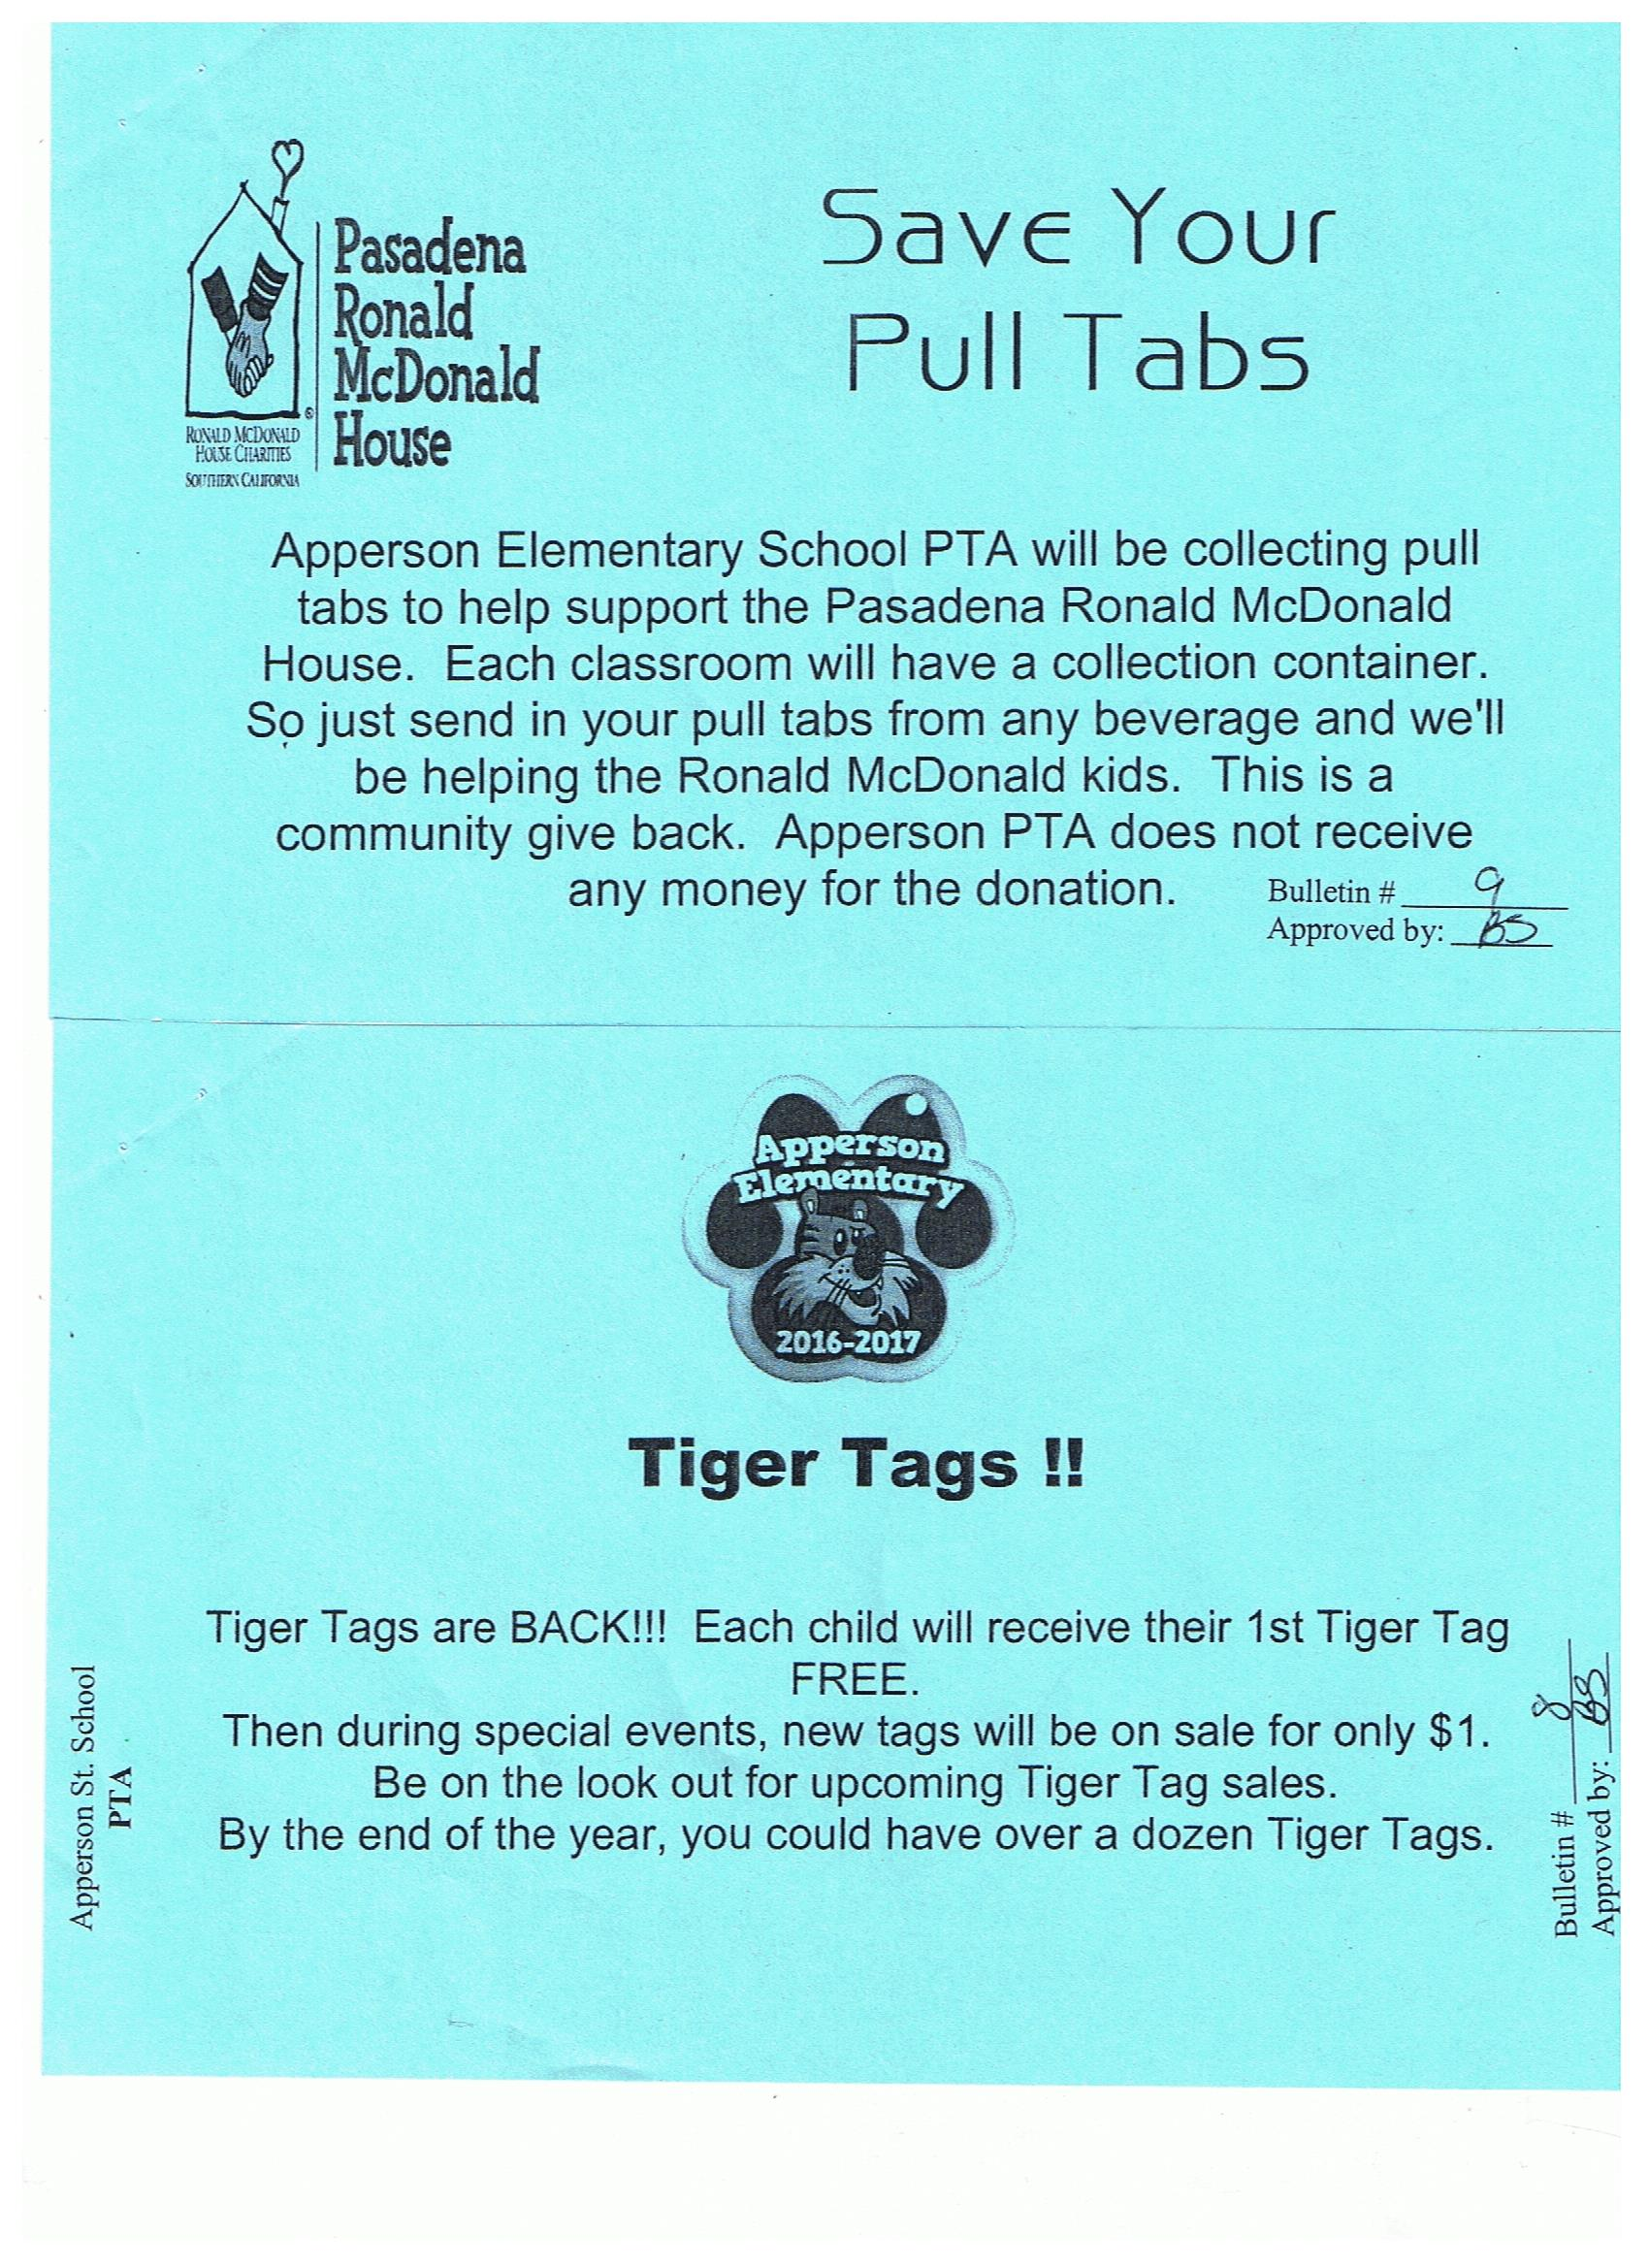 pull tabs and tiger tags 8-19-16